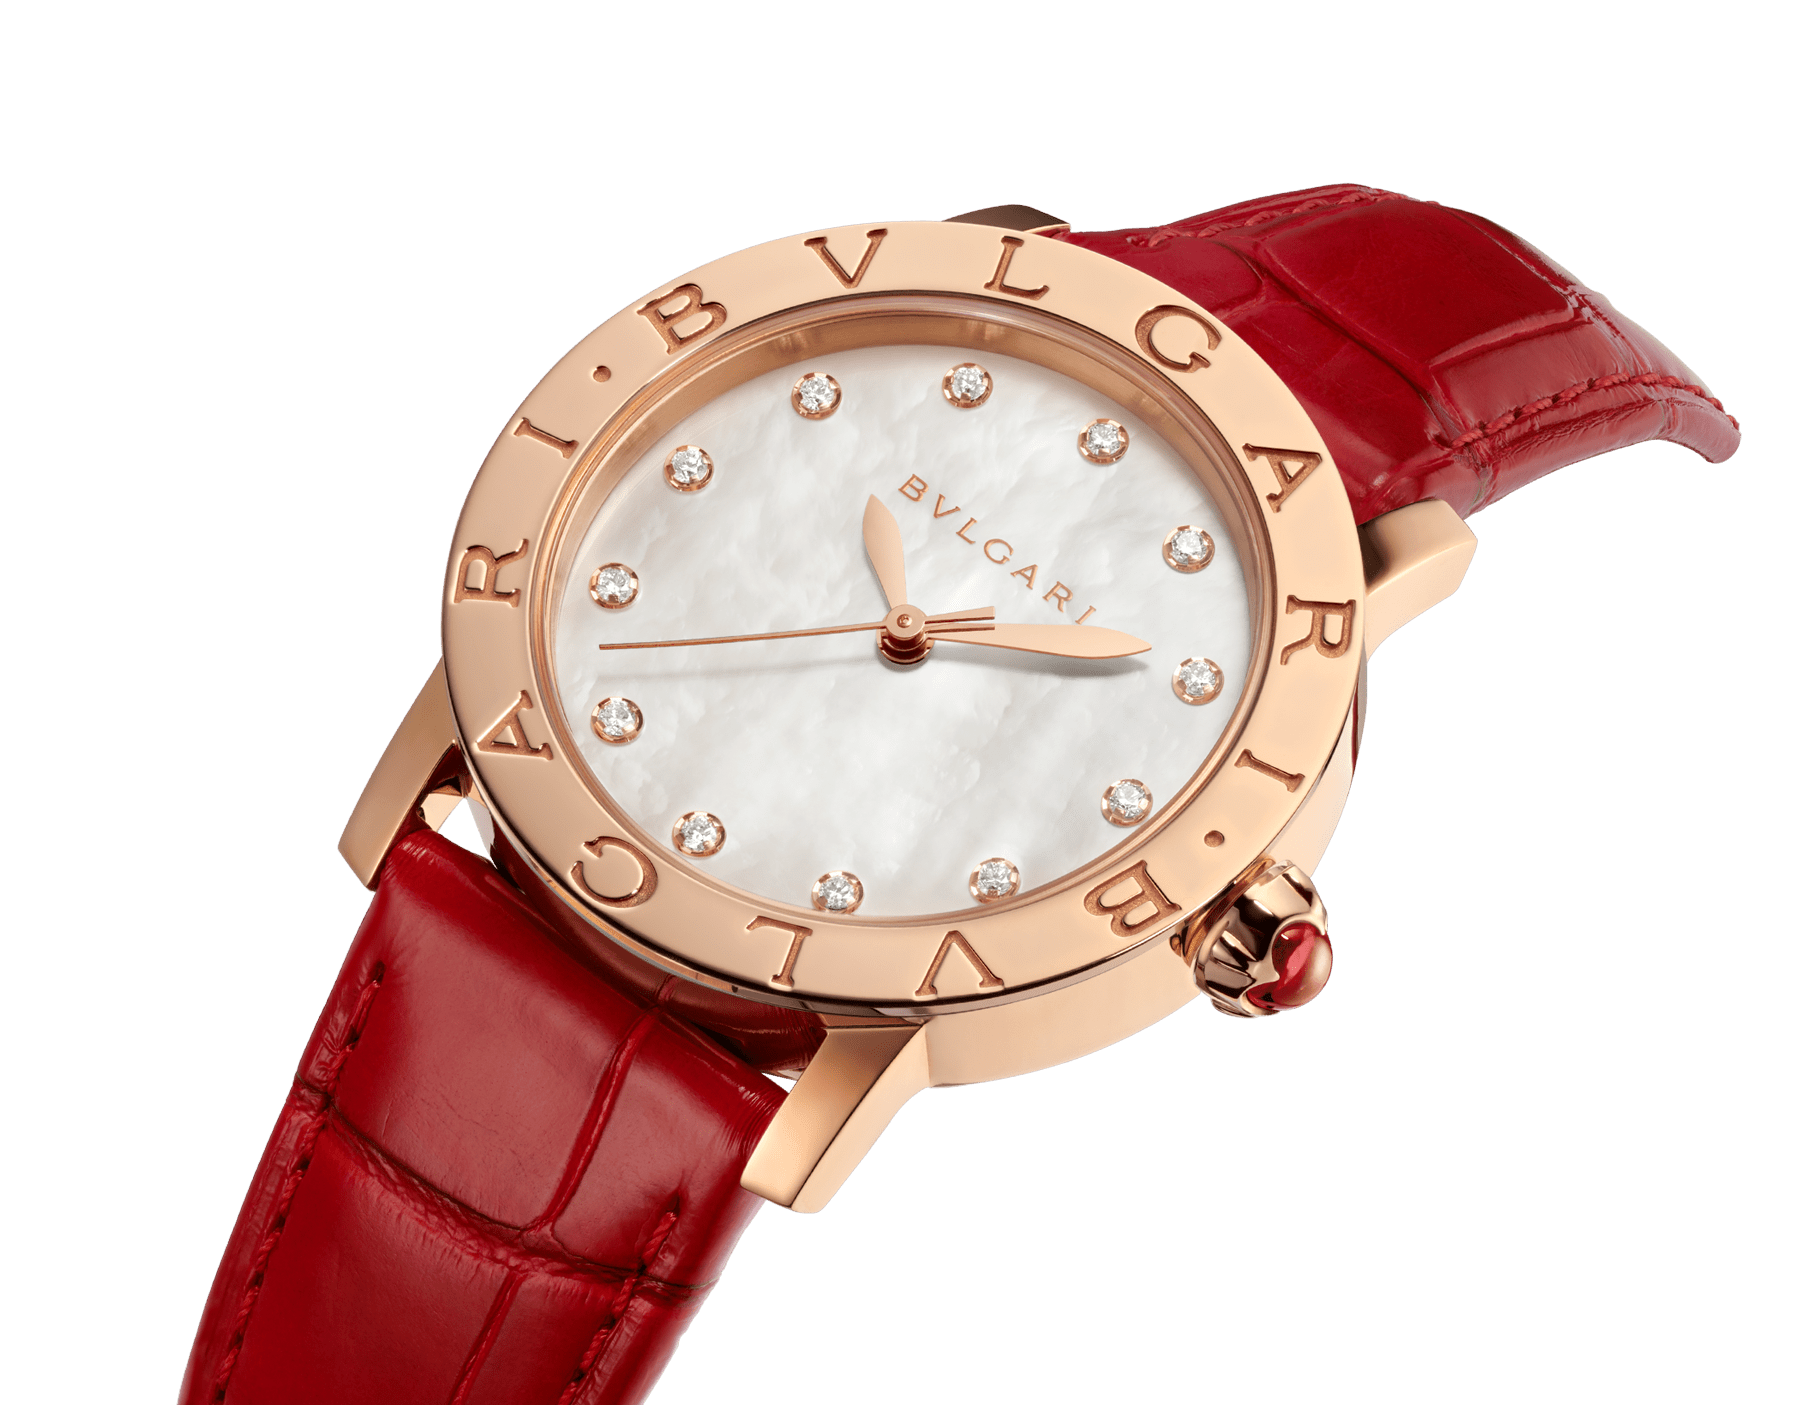 BVLGARI BVLGARI watch with 18 kt rose gold case, white mother-of-pearl dial, diamond indexes and shiny red alligator bracelet 102750 image 2